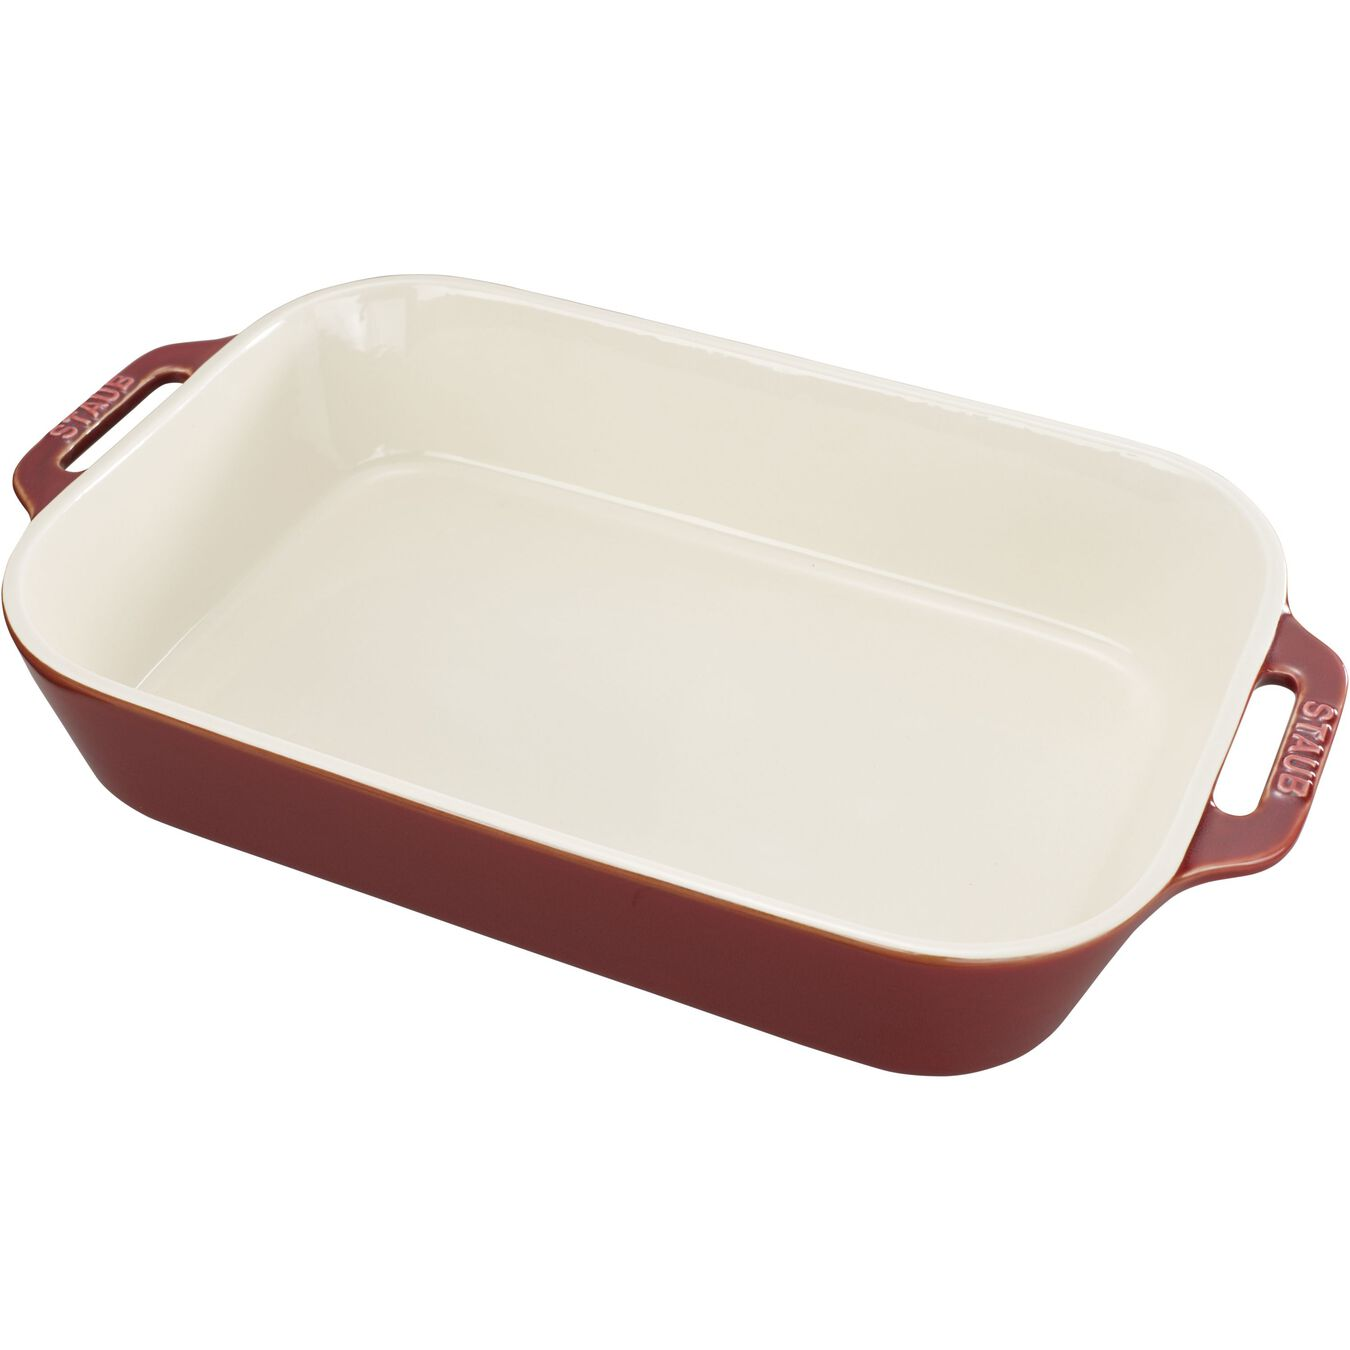 13-inch x 9-inch Rectangular Baking Dish - Rustic Red  ,,large 1